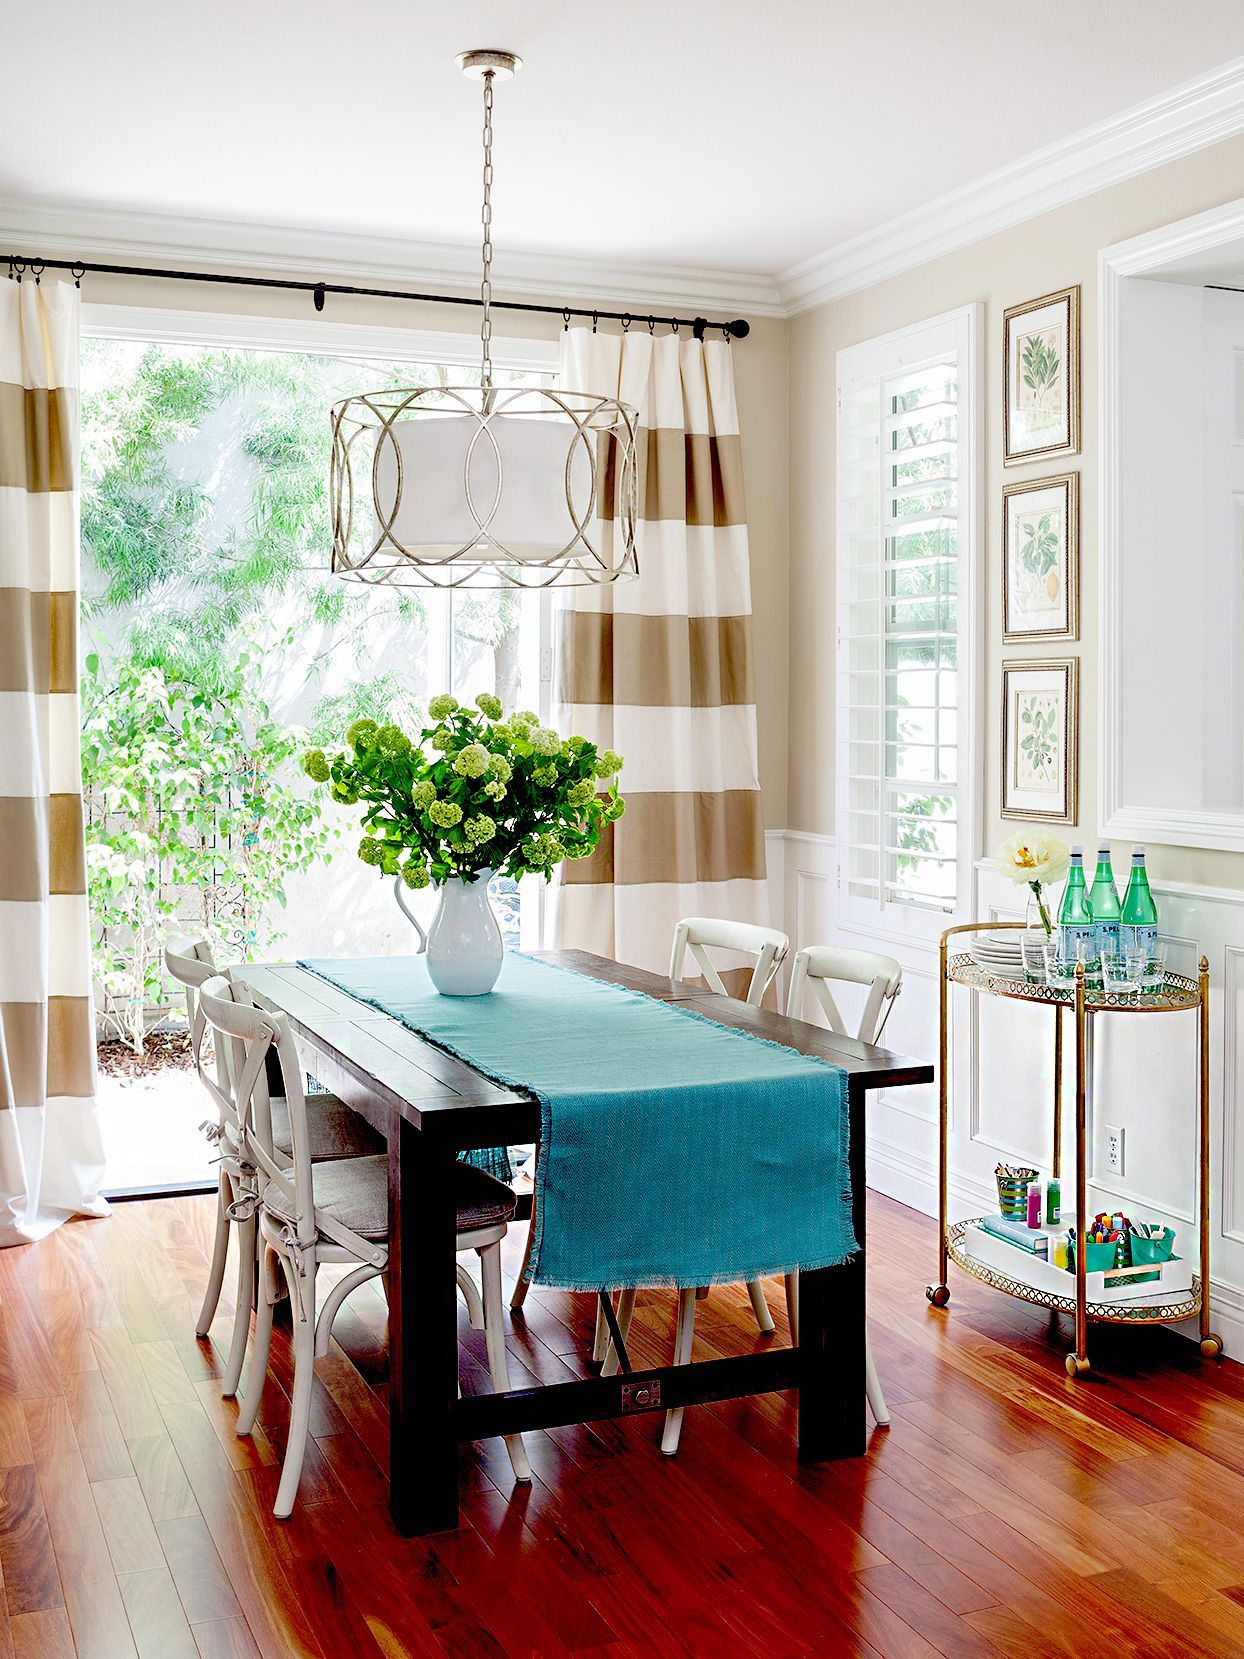 What Colors Go With Blue 10 Gorgeous Combinations For Every Room In Your Home Sliding Glass Door Curtains Sliding Door Blinds Sliding Glass Door Window Treatments